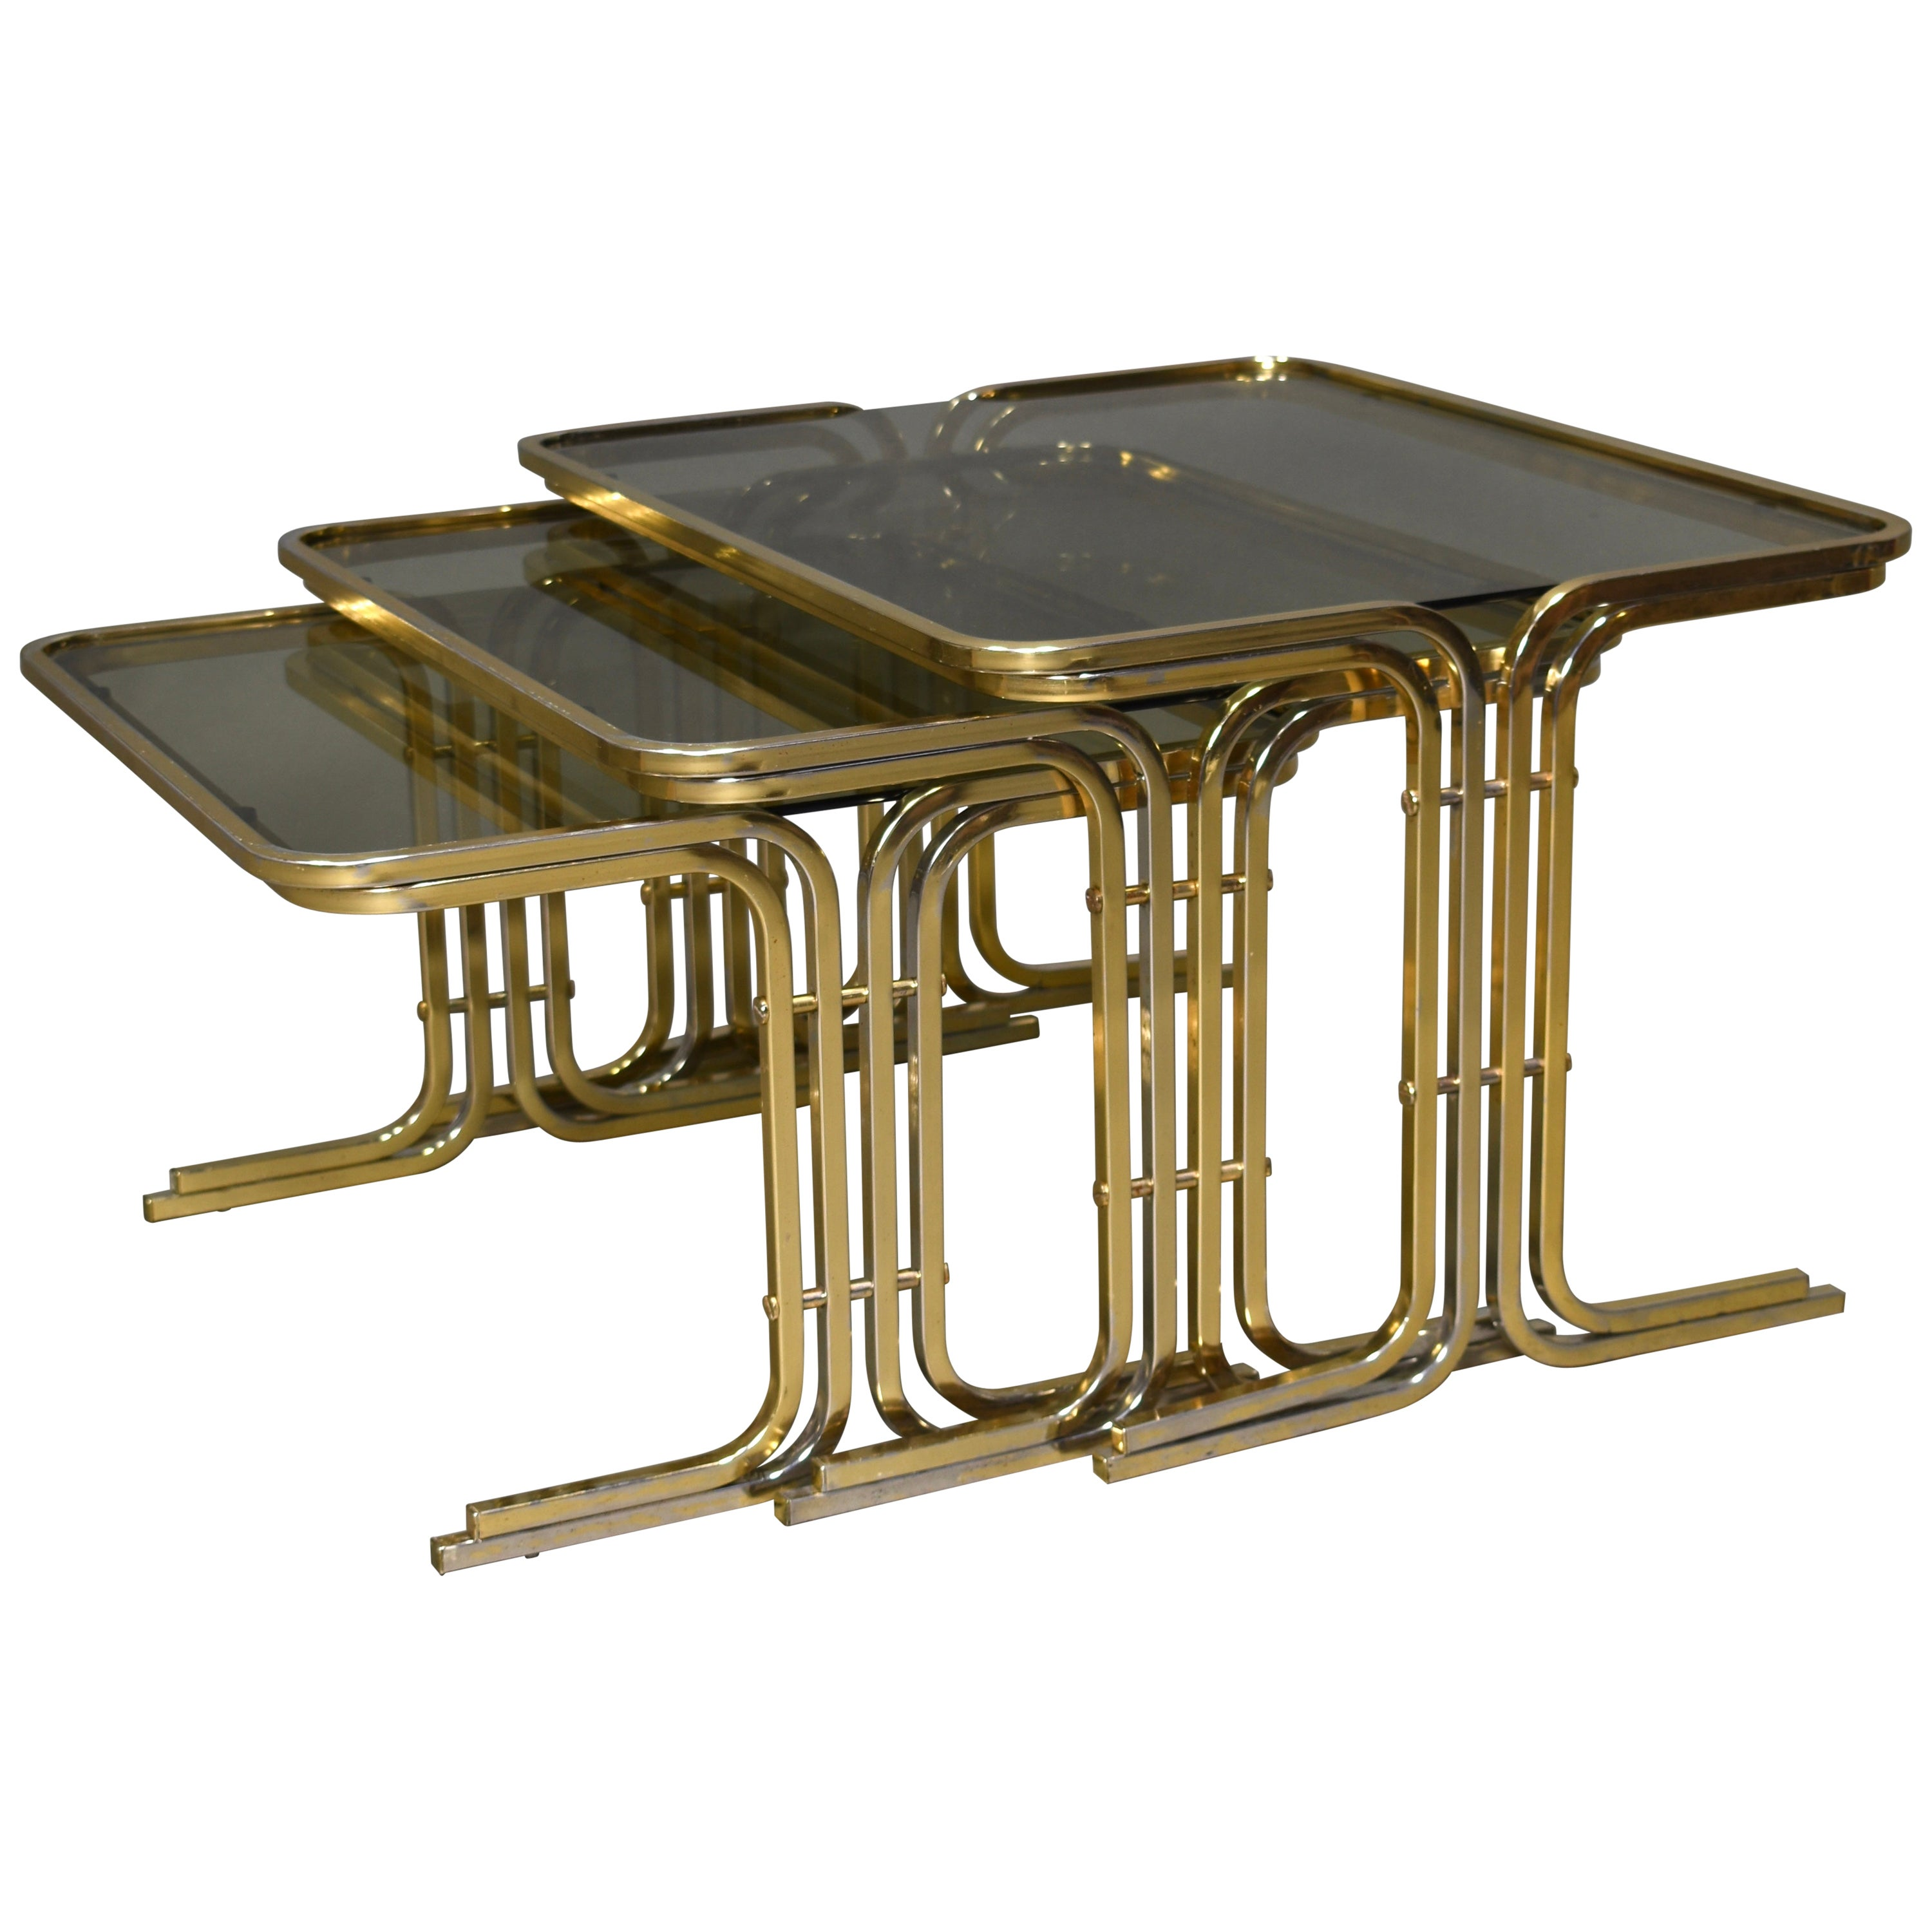 Italian 1970s Nesting Tables Gold / Smoked Glass, Italy, circa 1970